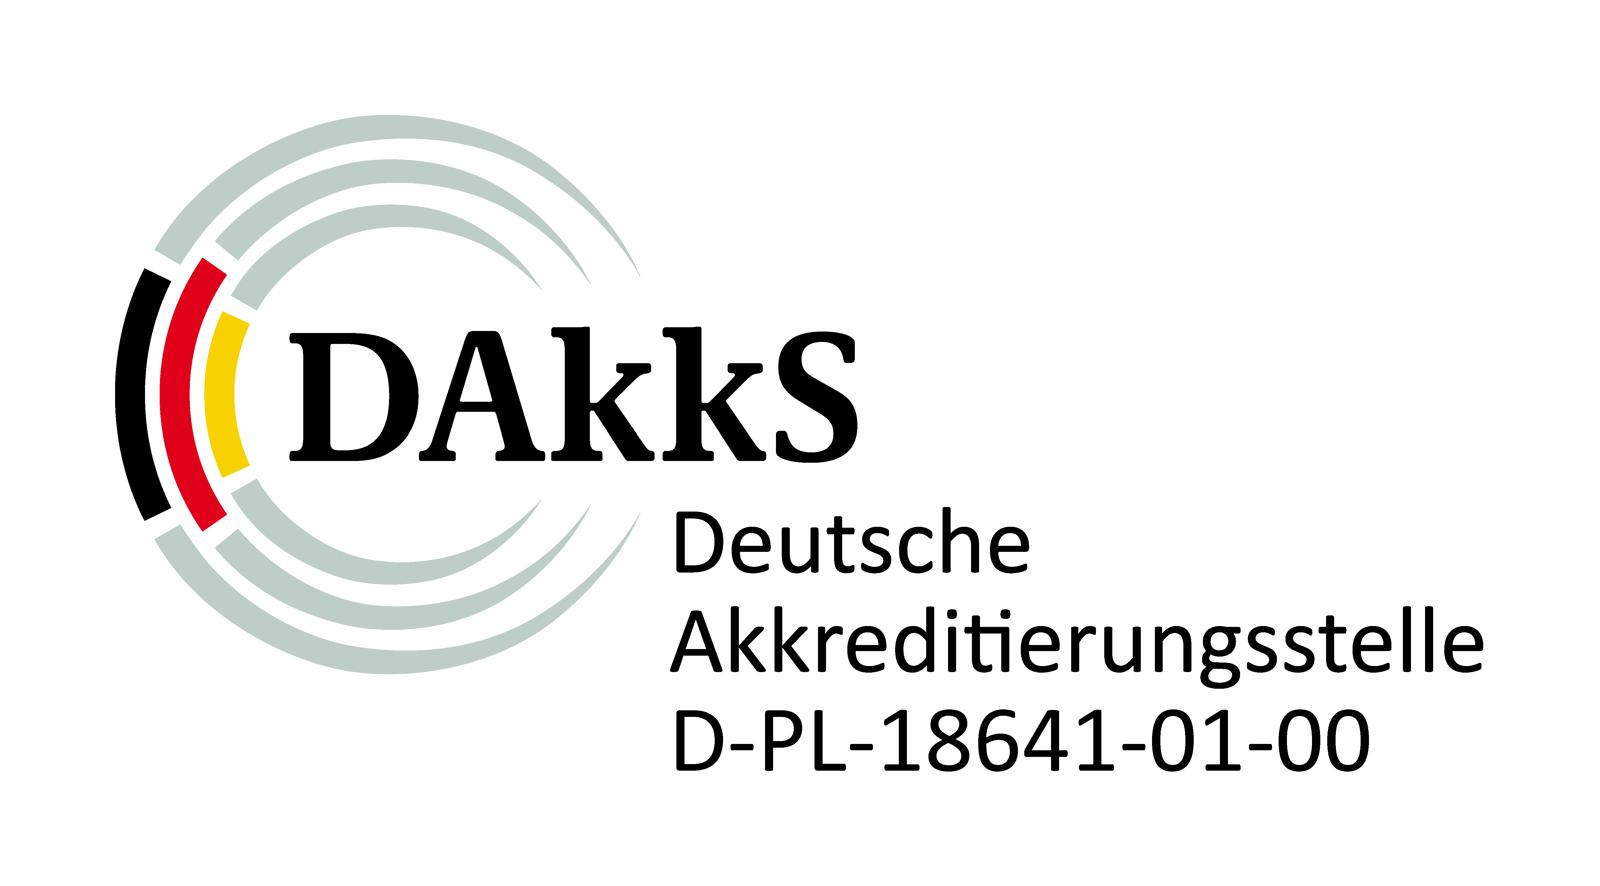 ICMP's ISO accreditation is monitored by Deutsche Akkreditierungsstelle (DAkkS)